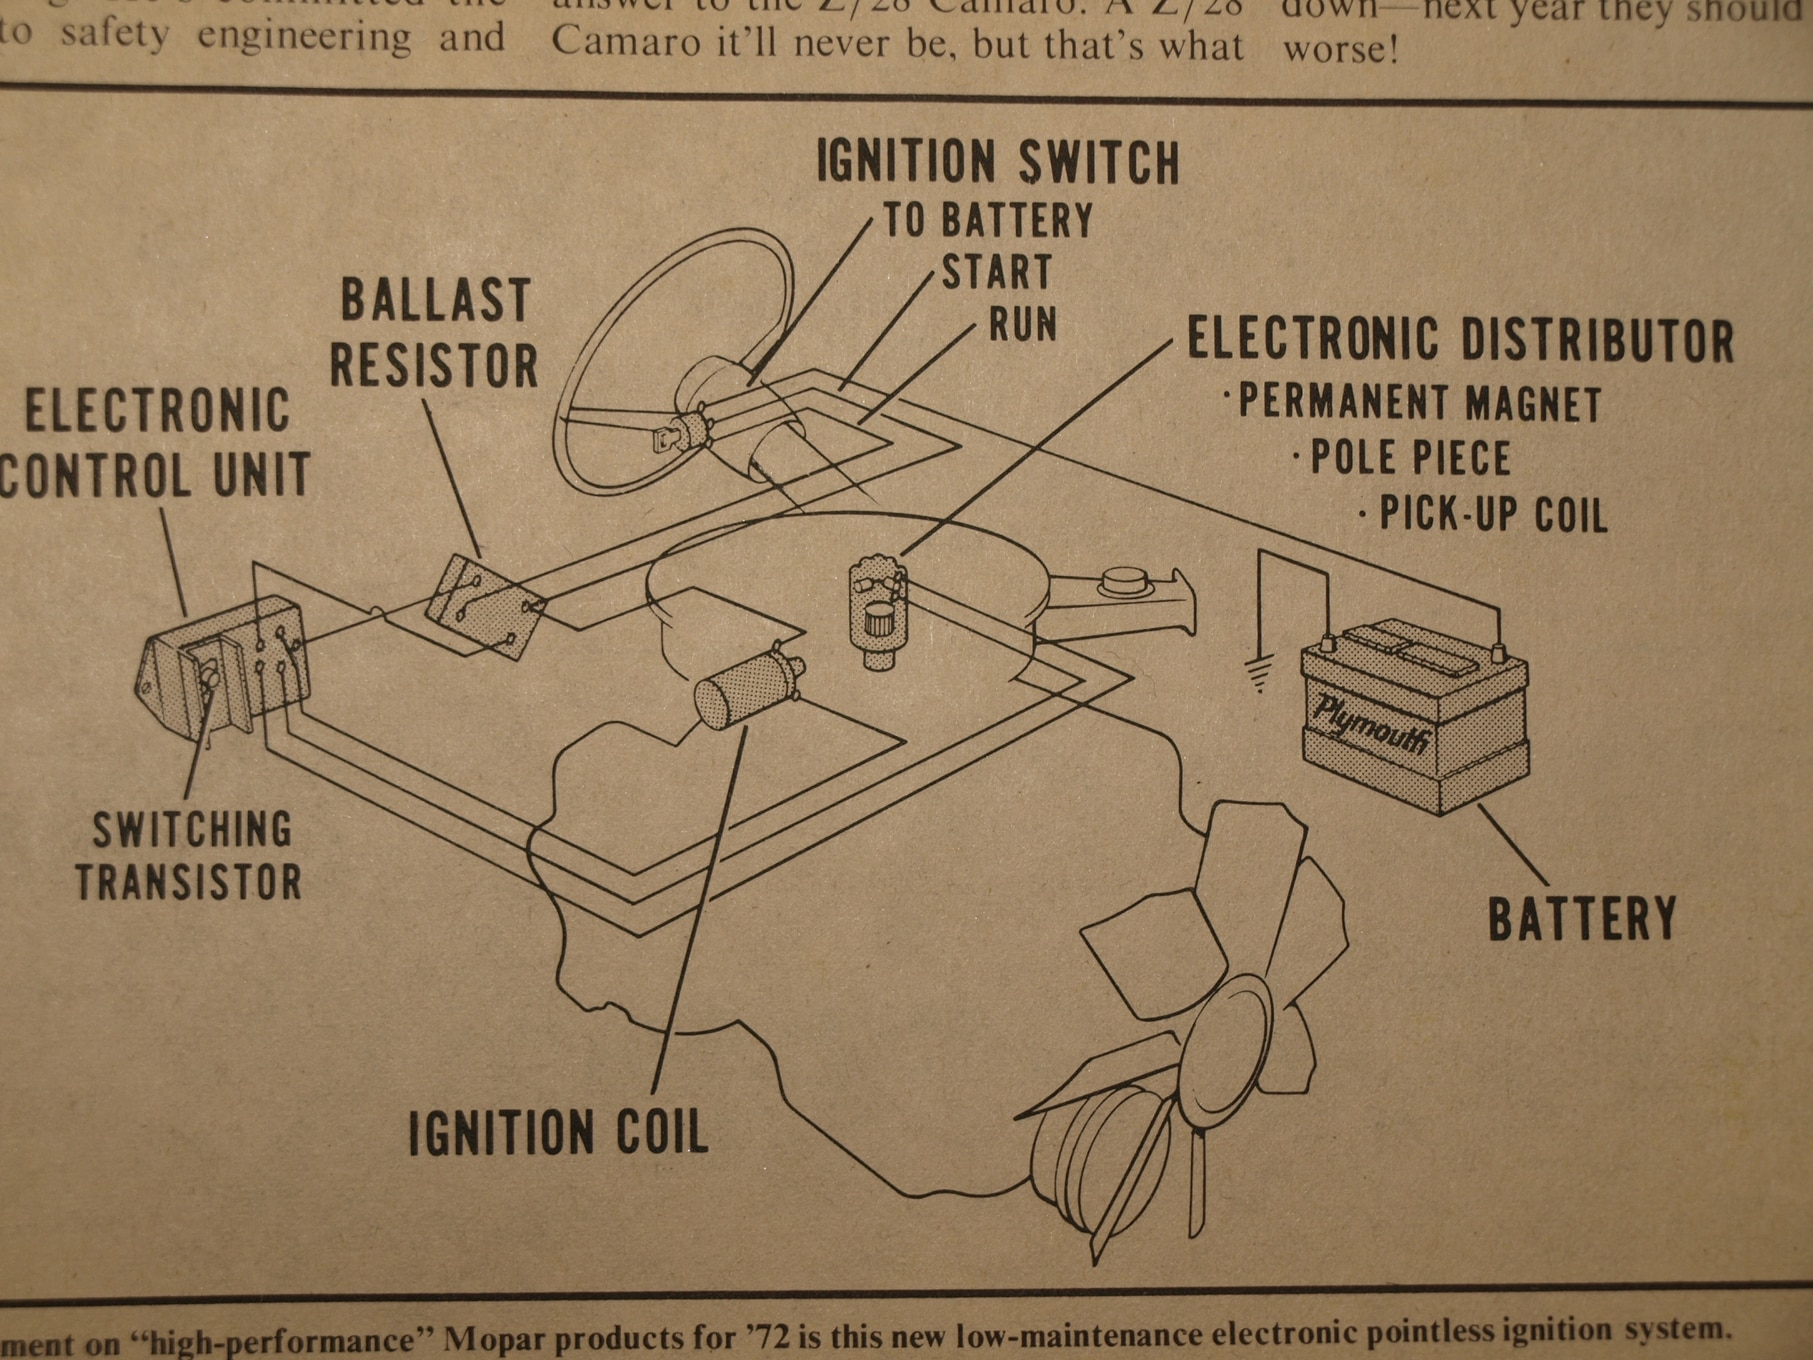 hight resolution of early electronic ignition system diagram for wiring a tachometer early chrysler electronic ignition system wiring diagram